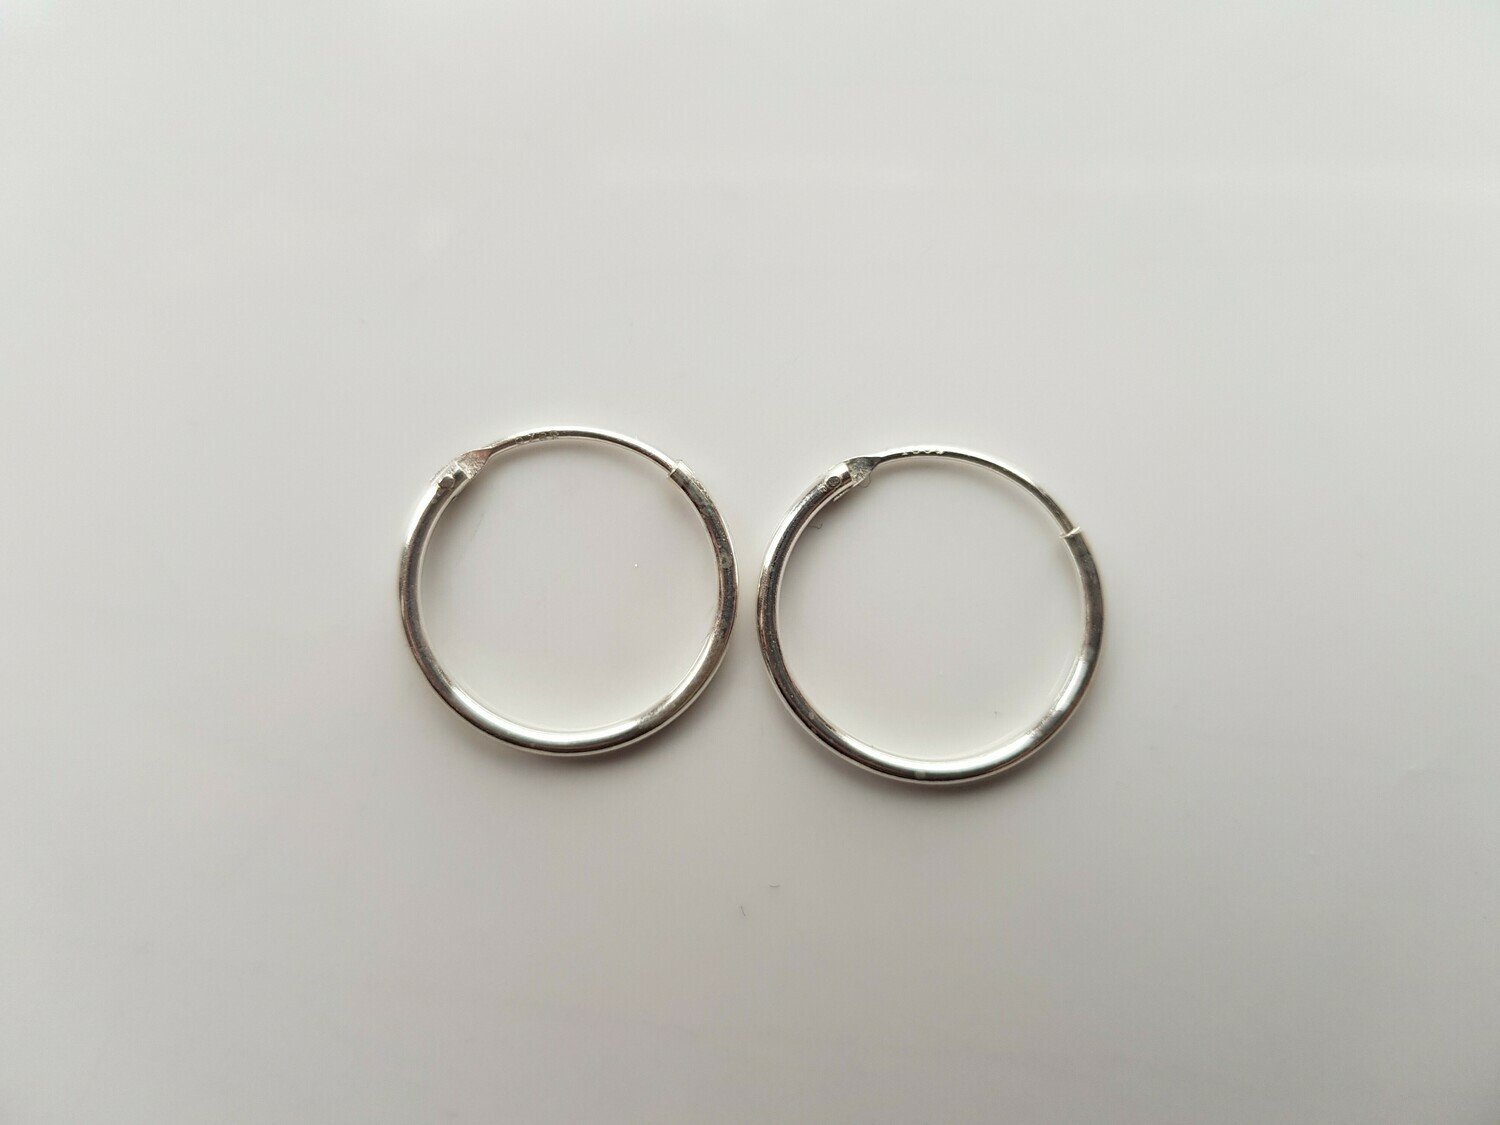 Oorringetjes 925 sterling zilver 14 mm